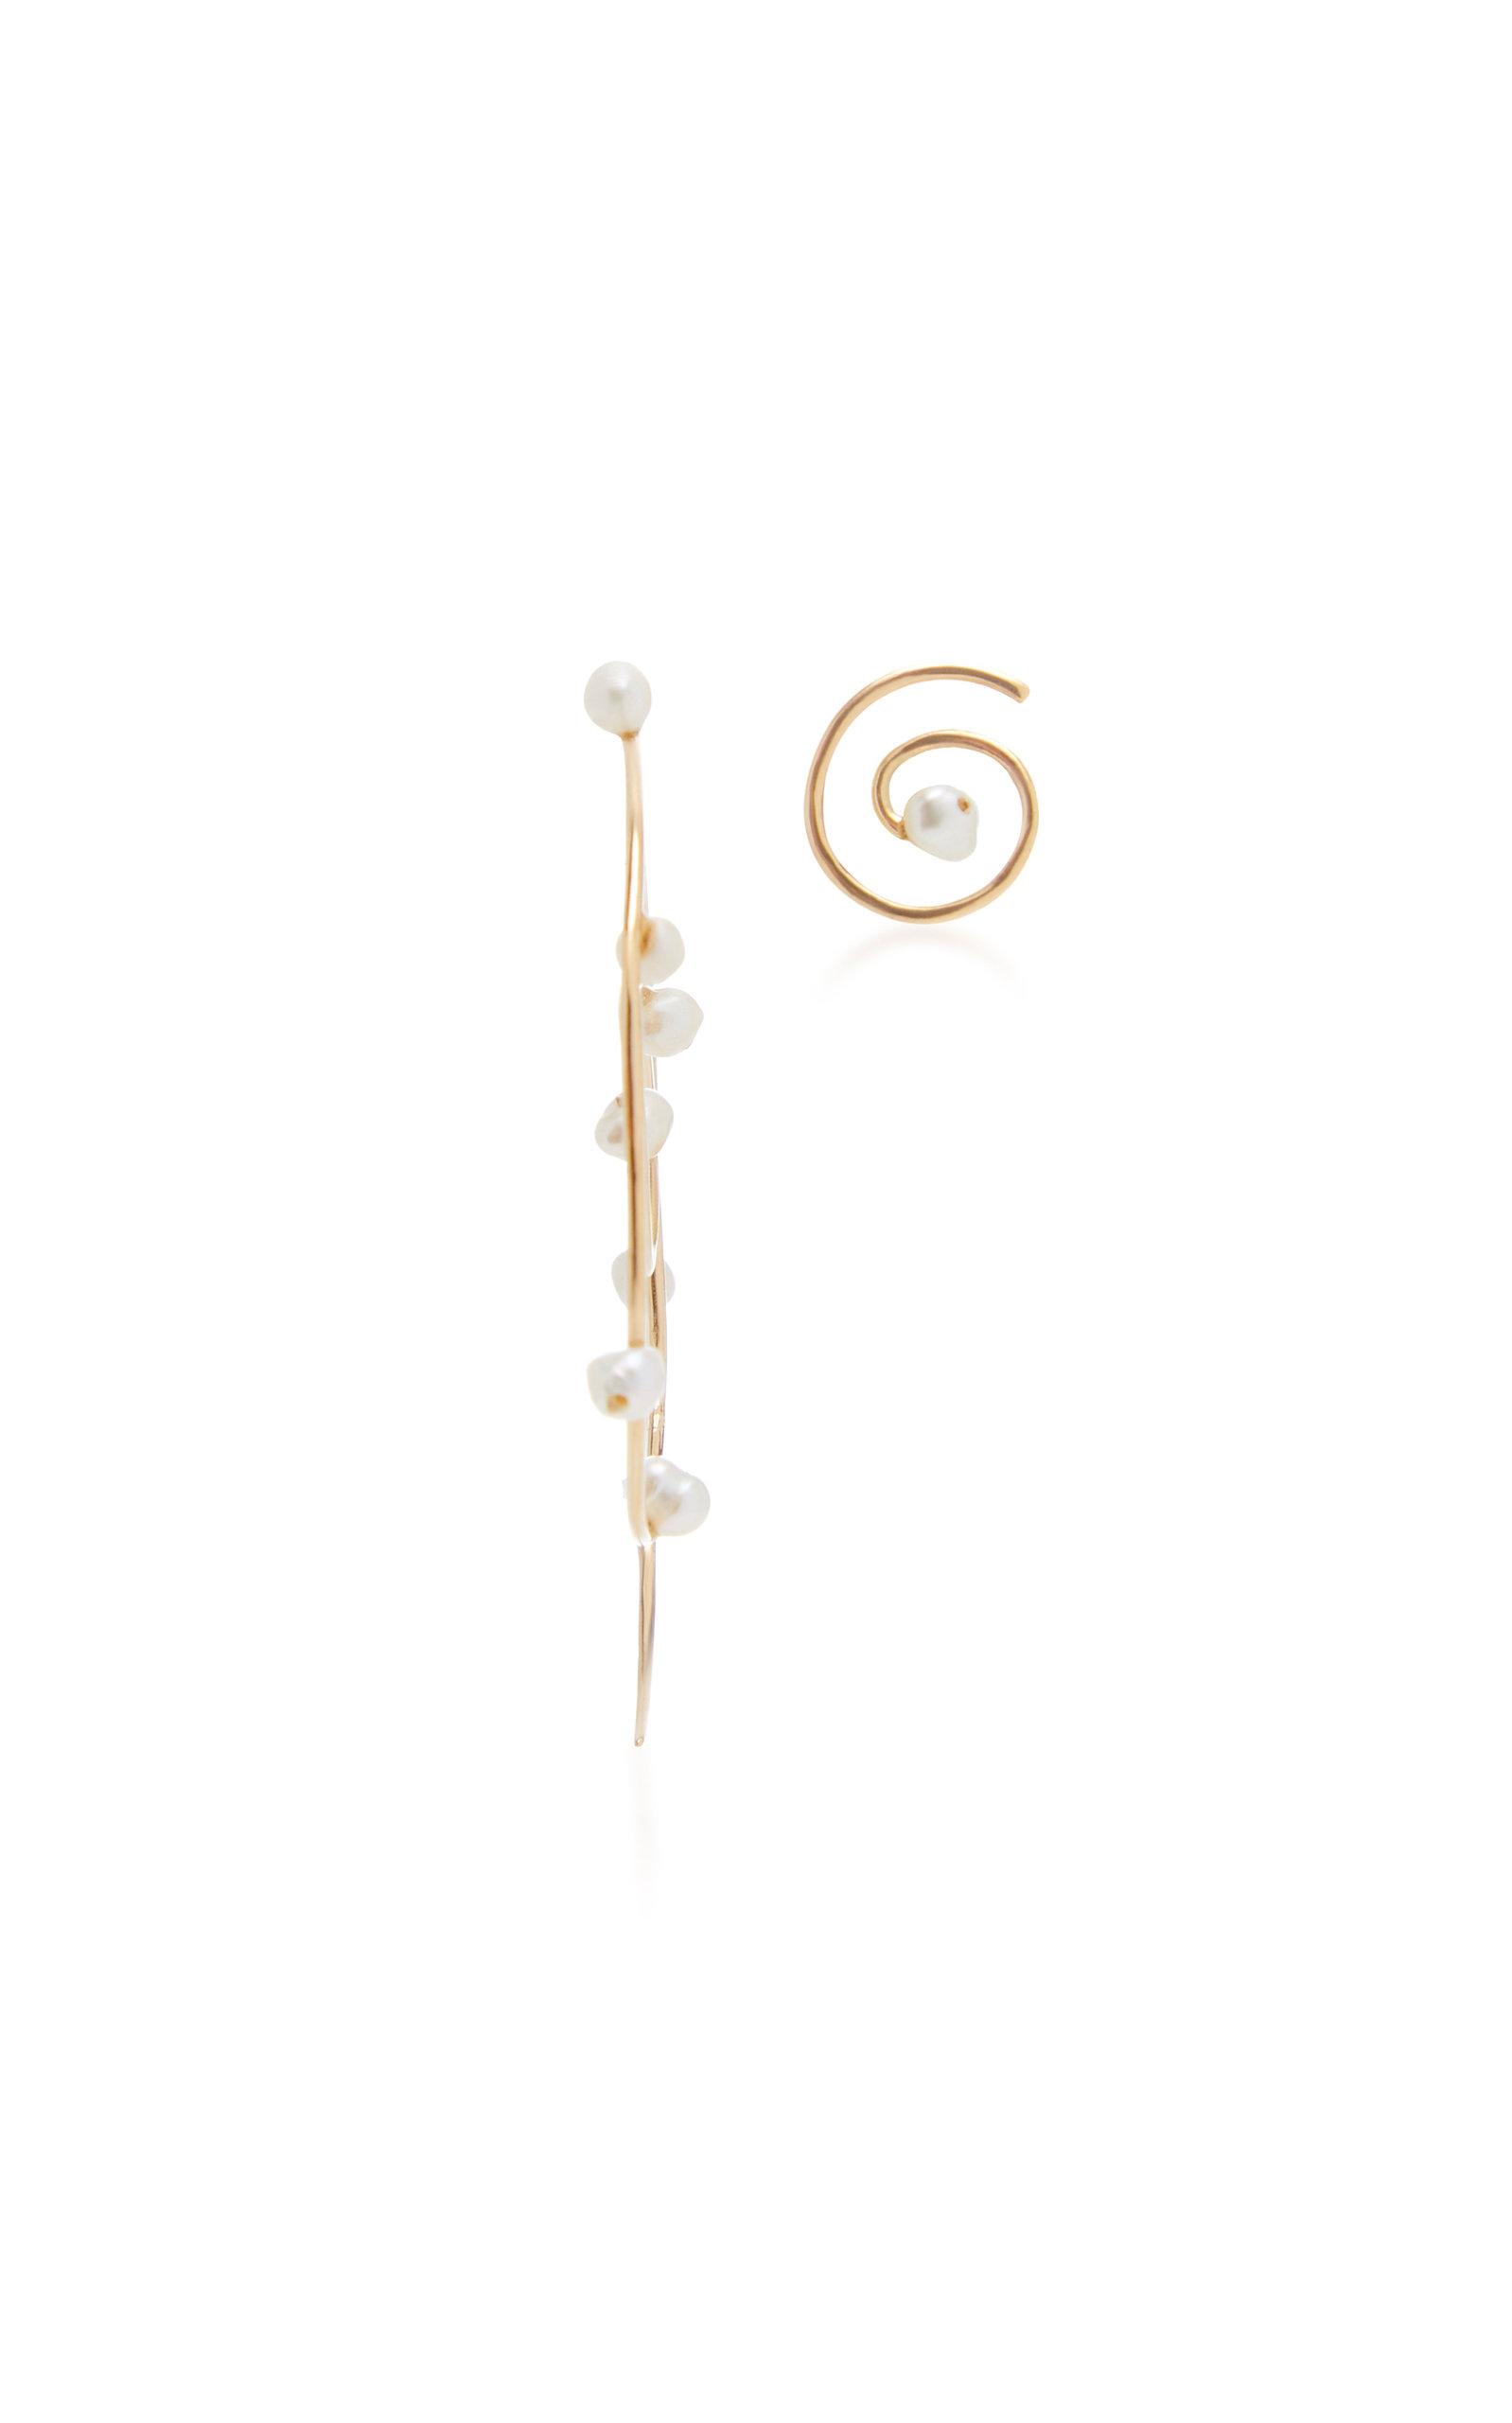 DONNA HOURANI DEW ON TENDRIL SPIRAL 18K GOLD PEARL EARRINGS